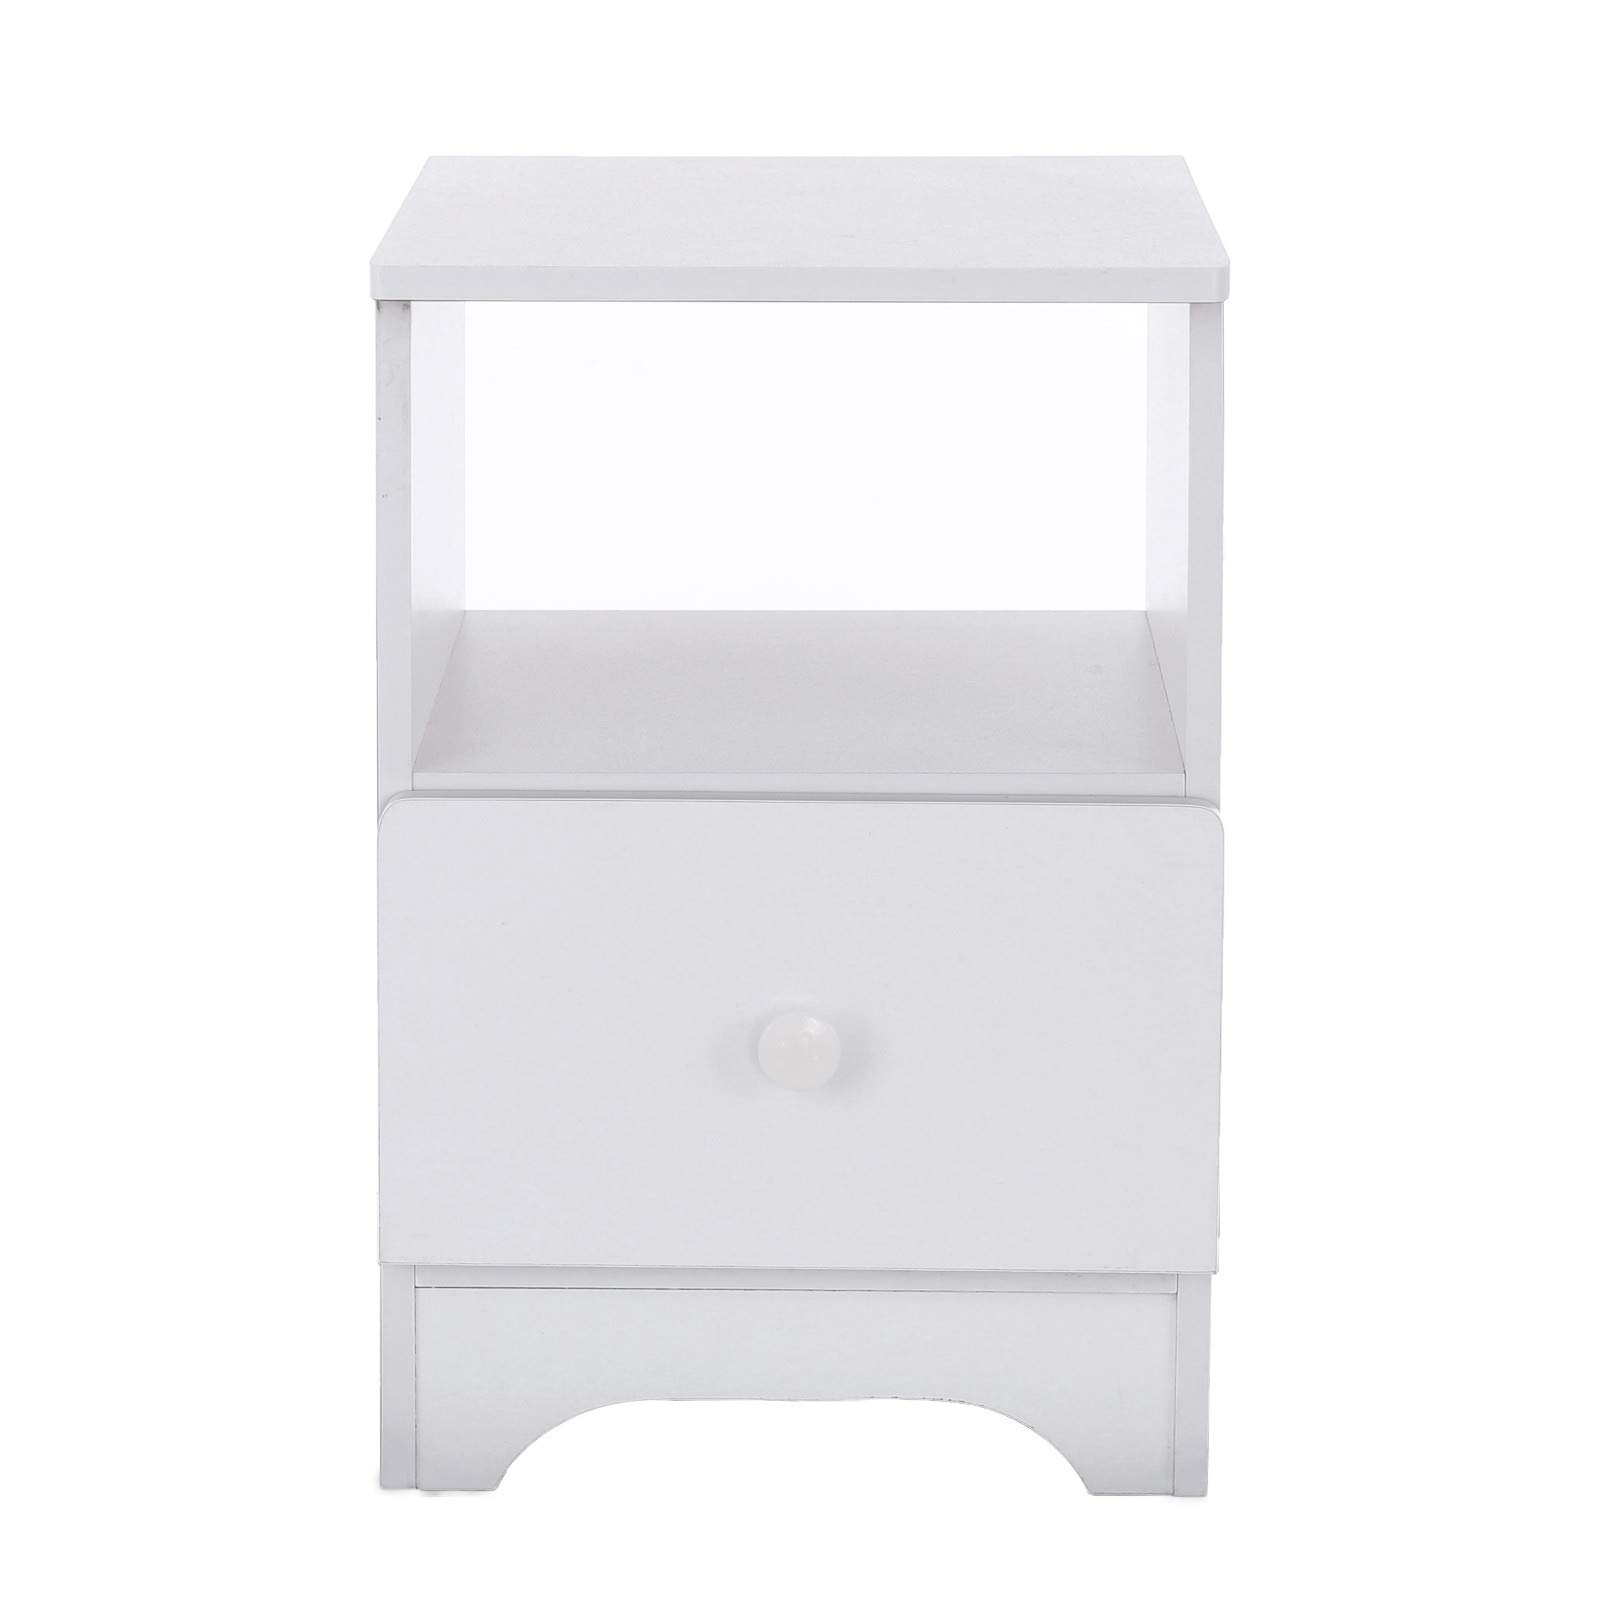 Ktyssp Simple Modern Imitation Wood Storage Cabinet Simple Bedside Small Cabinet Storage Cabinet Economy Bedroom Cabinet, Nordic Pine Color Double Drawer/White Single Drawer (A) by Ktyssp Storage